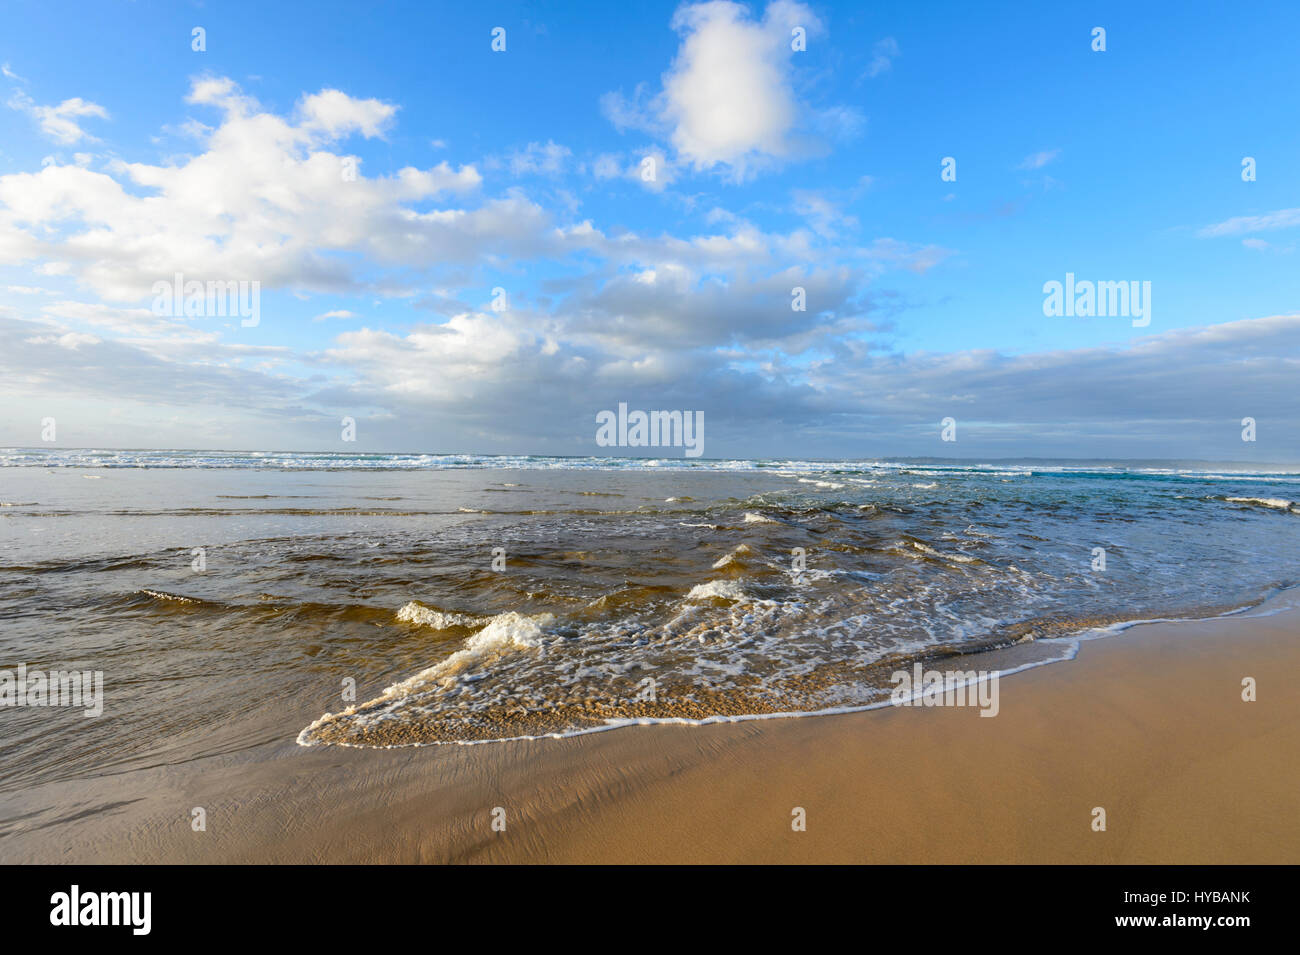 Gentle waves lapping at Conjola Beach, South Coast, New South Wales, NSW, Australia - Stock Image